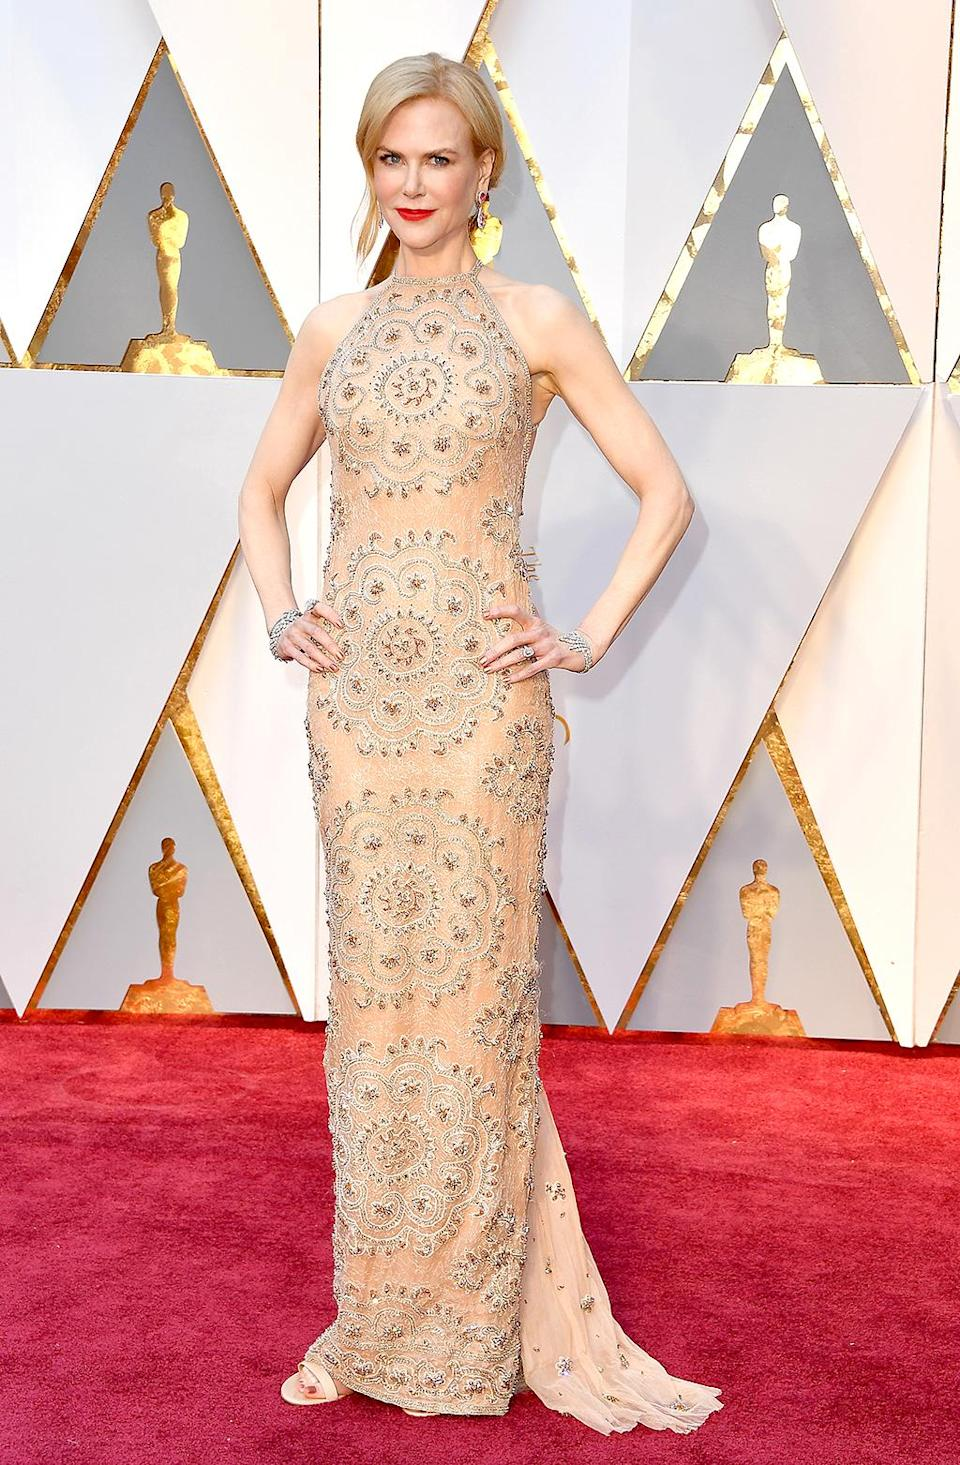 <p>Nicole Kidman attends the 89th Annual Academy Awards at Hollywood & Highland Center on February 26, 2017 in Hollywood, California. (Photo by Steve Granitz/WireImage) </p>